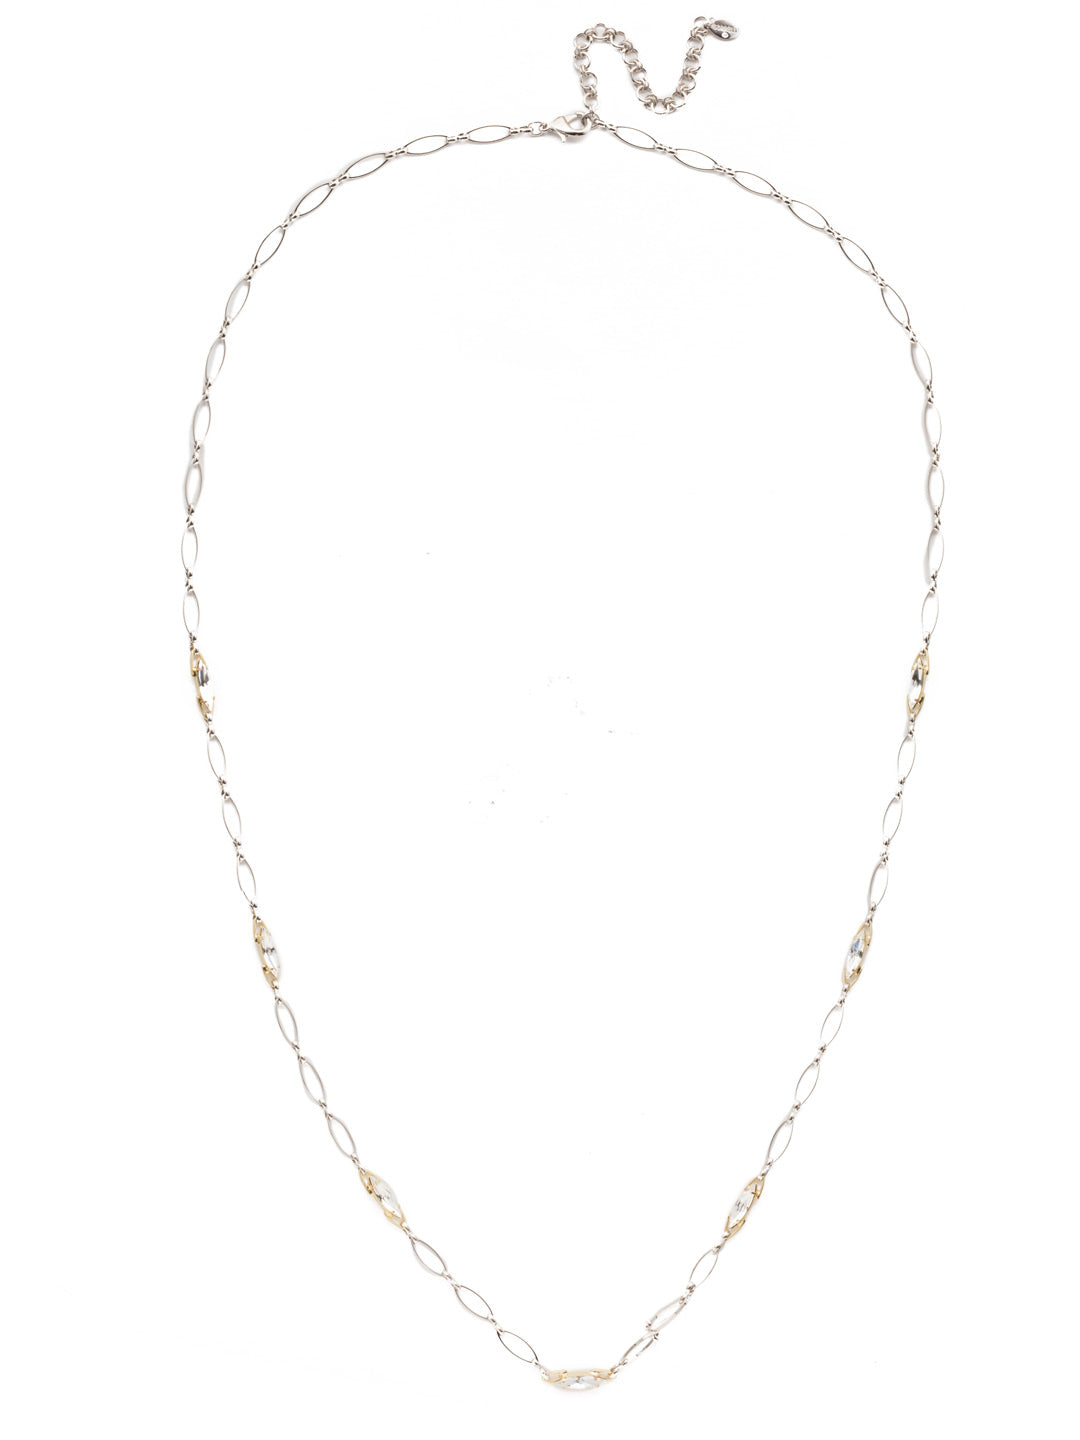 Coupled Chain Crystal Long Necklace - 4NEK17MXCRY